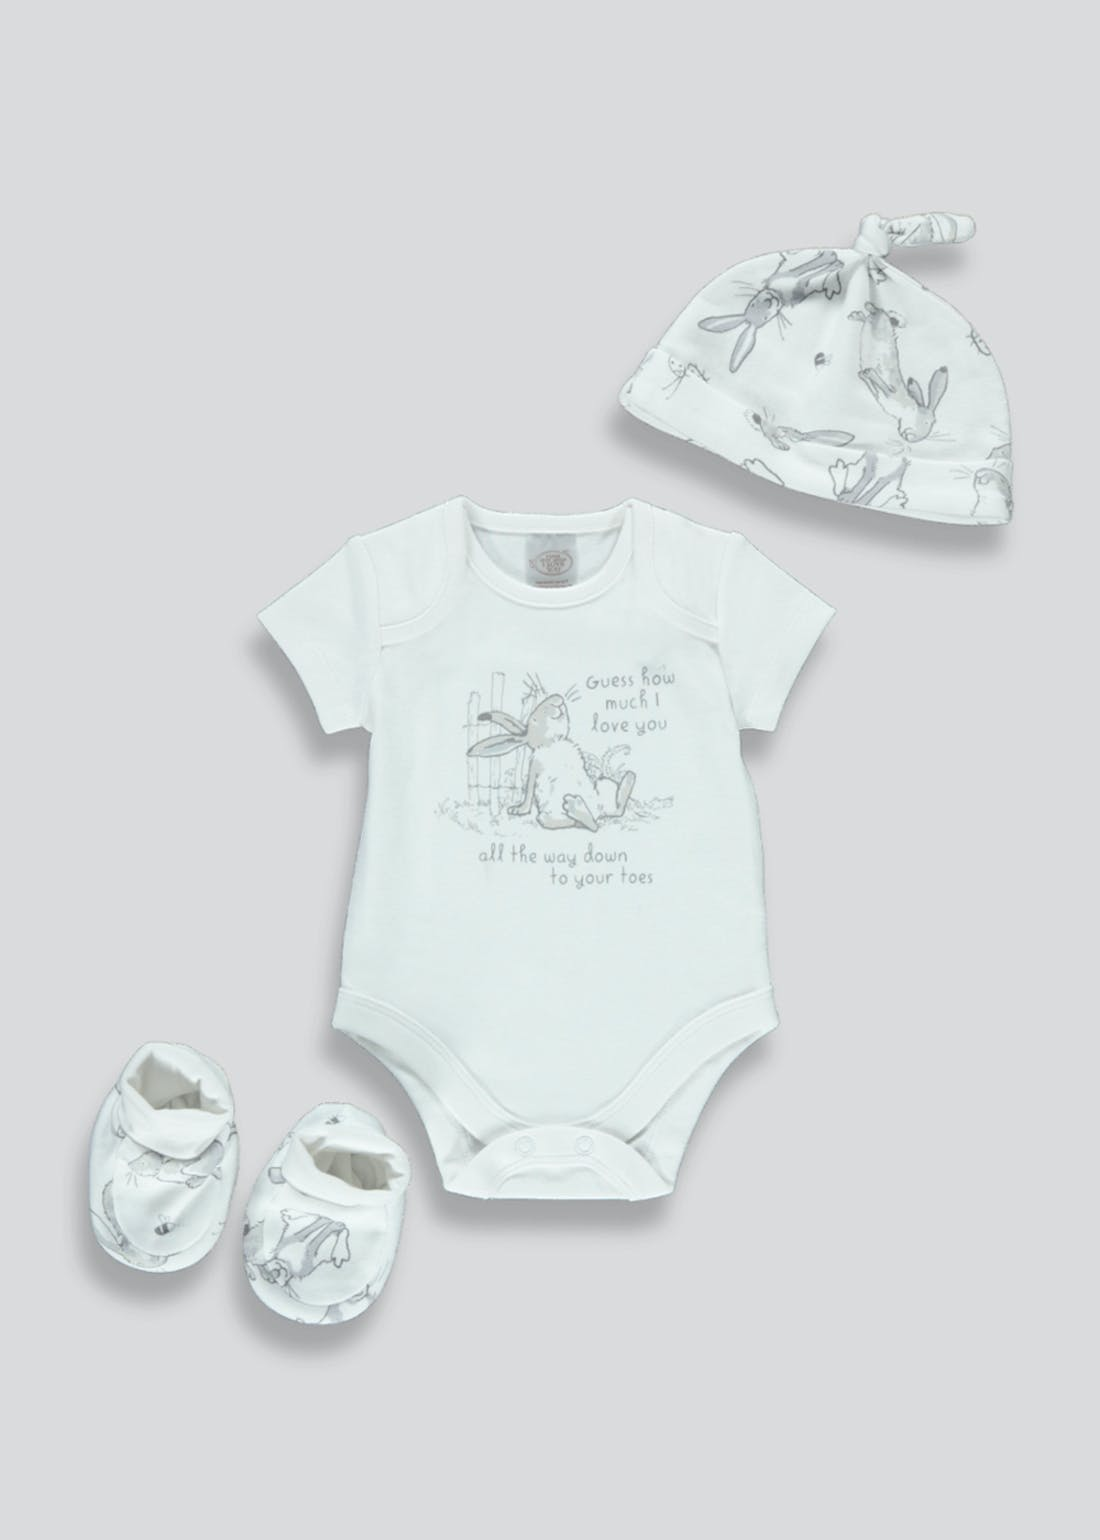 Unisex Guess How Much I Love You Gift Set (Newborn-3mths)